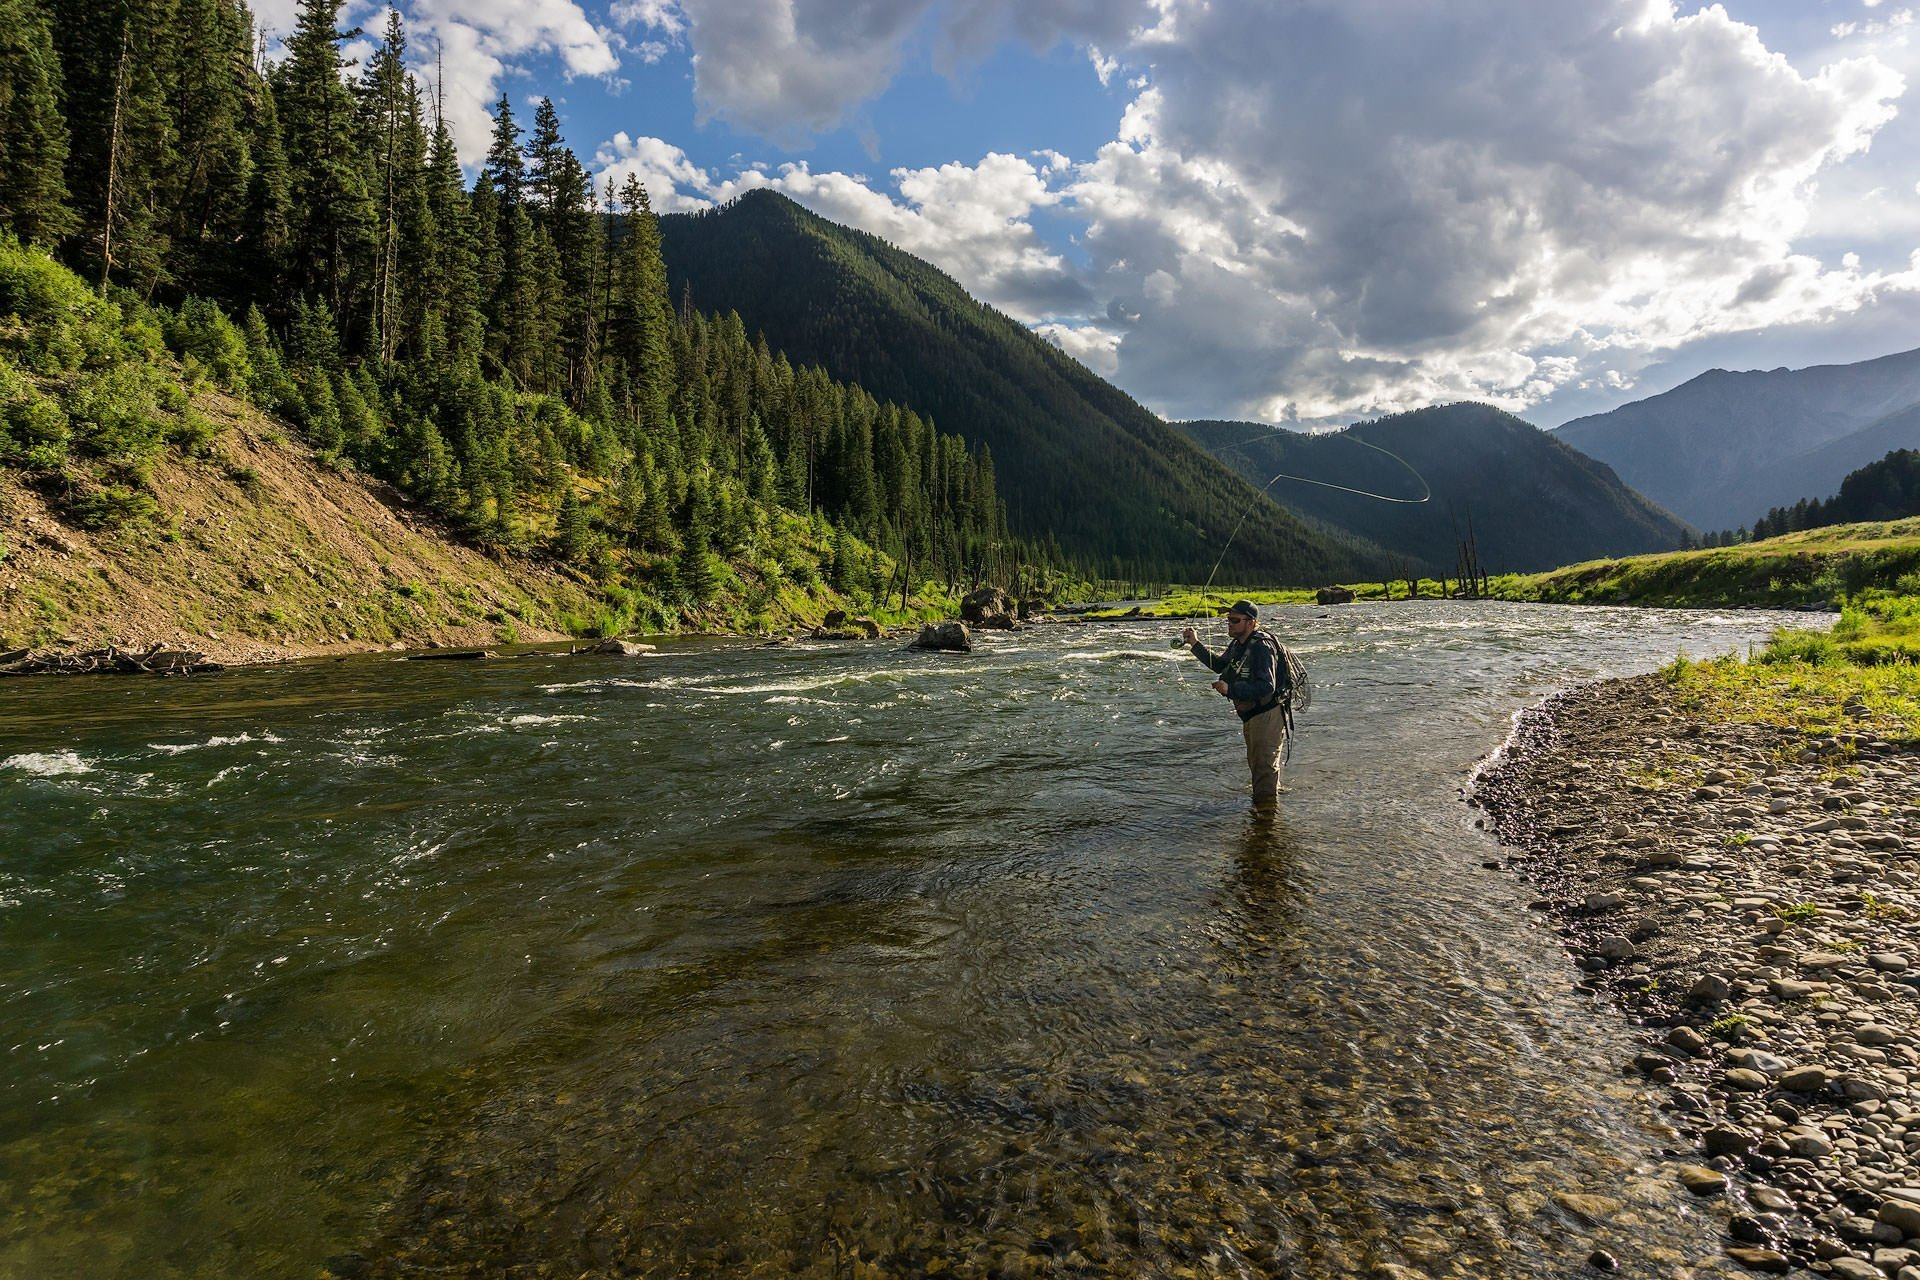 Madison River Fly Fishing - Fly Fishing Photography